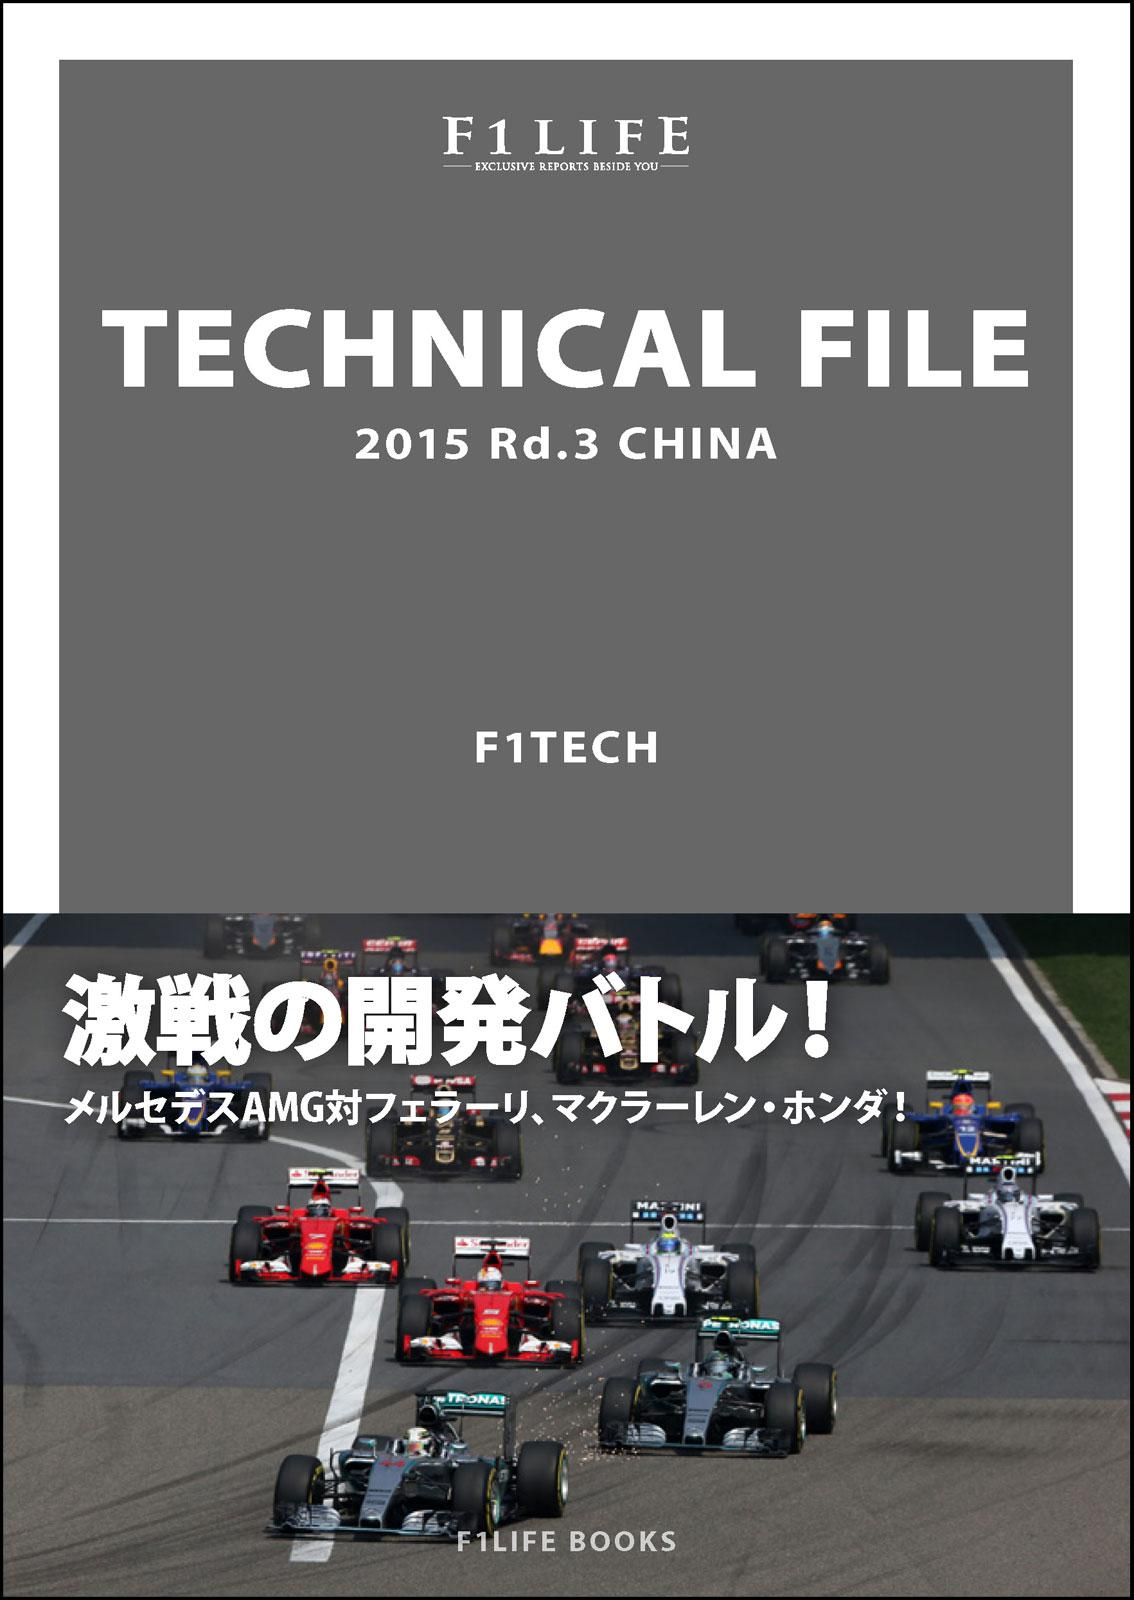 『TECHNICAL FILE』2015 Rd.3 CHINA